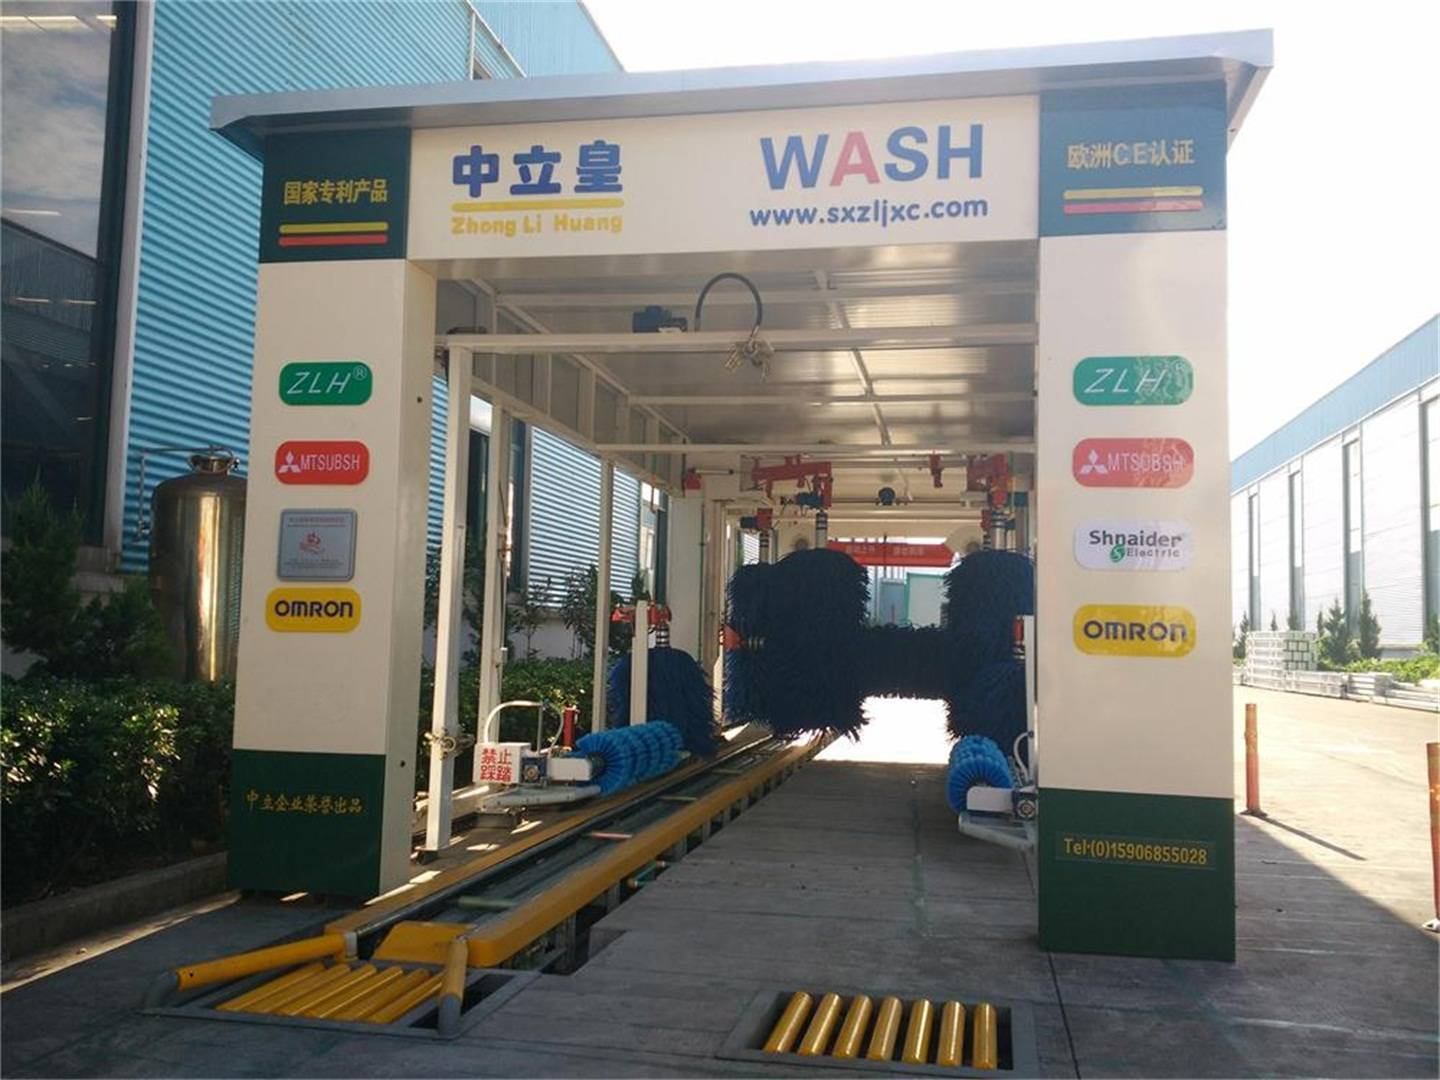 2016 new generation 9 brushes automatic car wash machine price,car wash equipment with CE